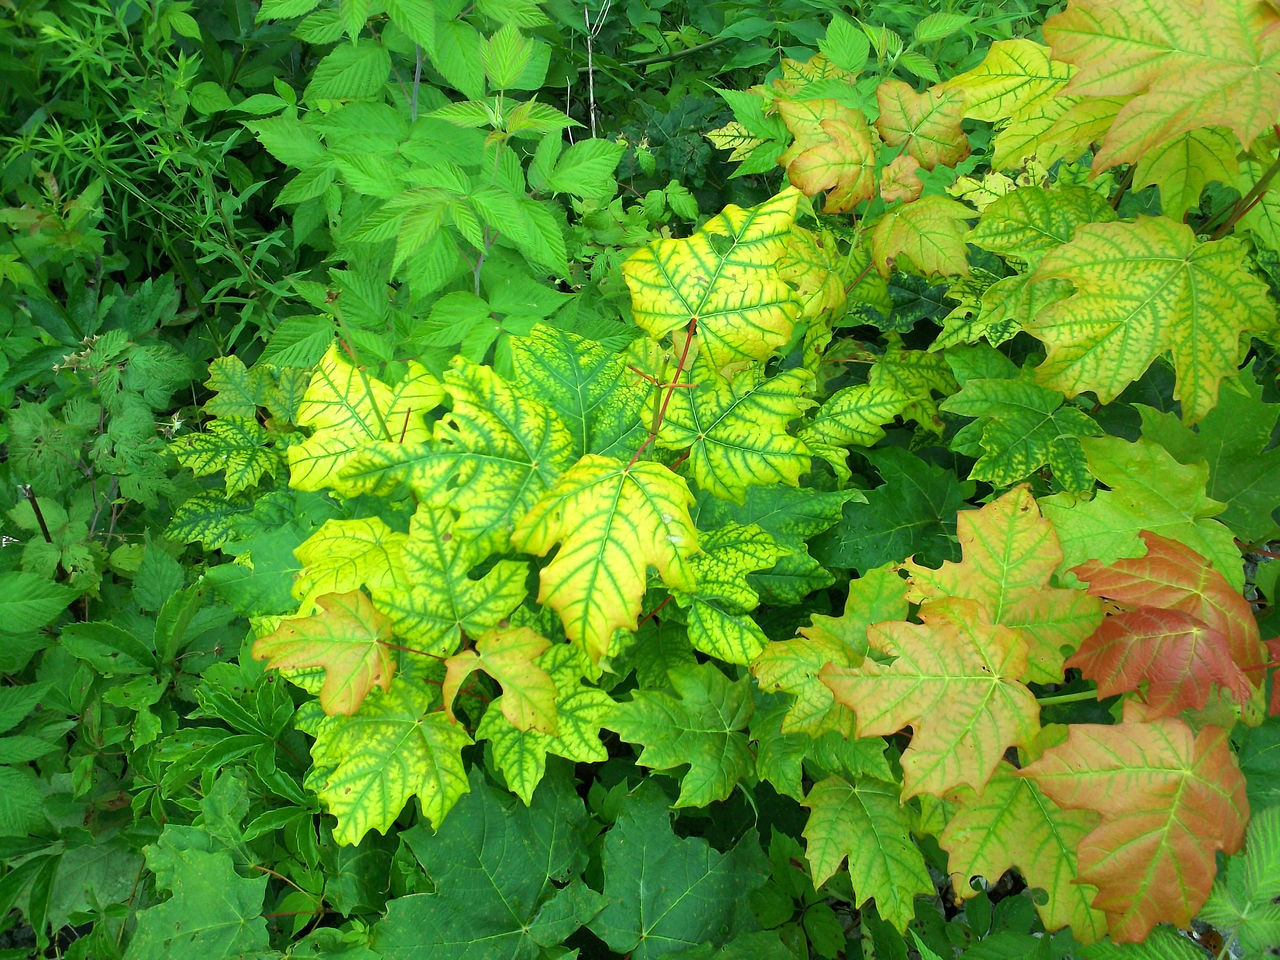 Foliage Foliage, Vegetation, Plants, Green, Leaves, Leafage, Undergrowth, Underbrush, Plant Life, Flora